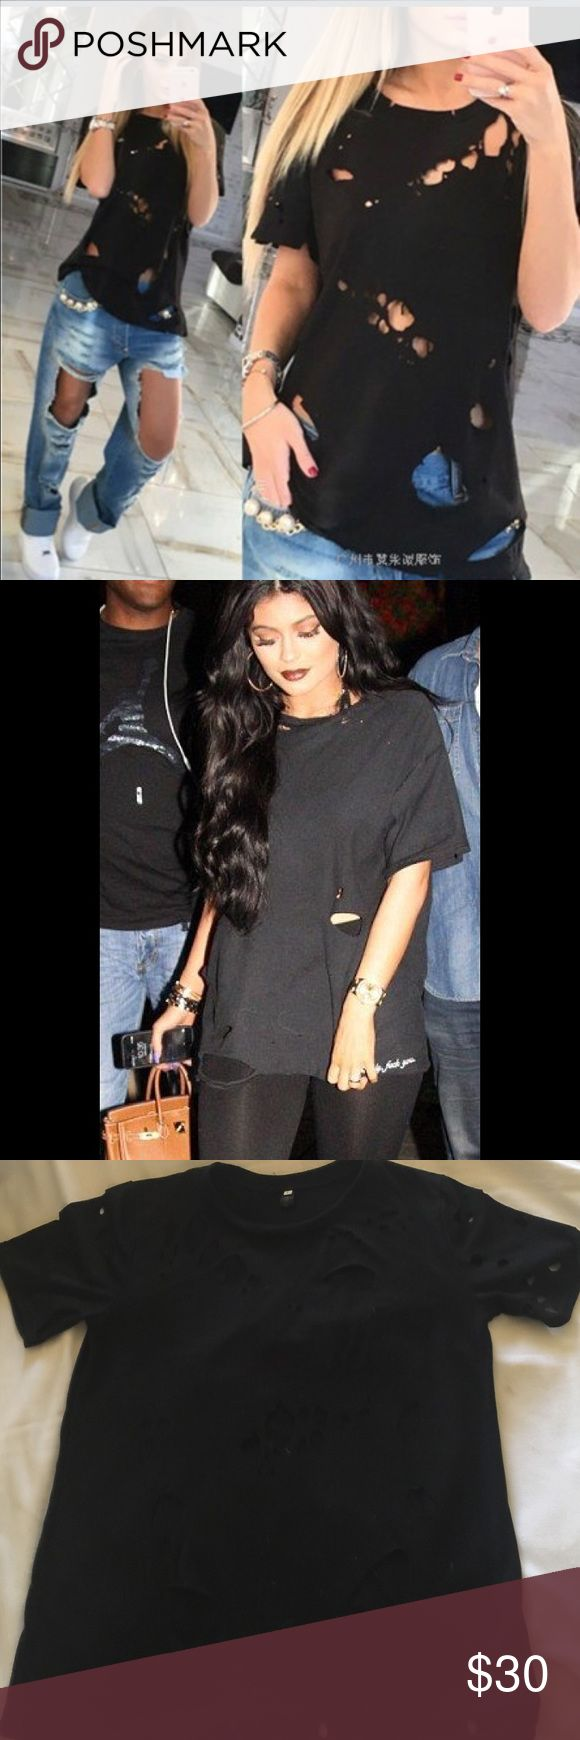 *FACTORY MADE NOT DIY**** Like Yeezy FACTORY MADE NOT DIY****Black t-shirt with holes. Shirt is NWOT.  Like Yeezy as seen on Kylie Jenner. Shy Land Tops Tees - Short Sleeve